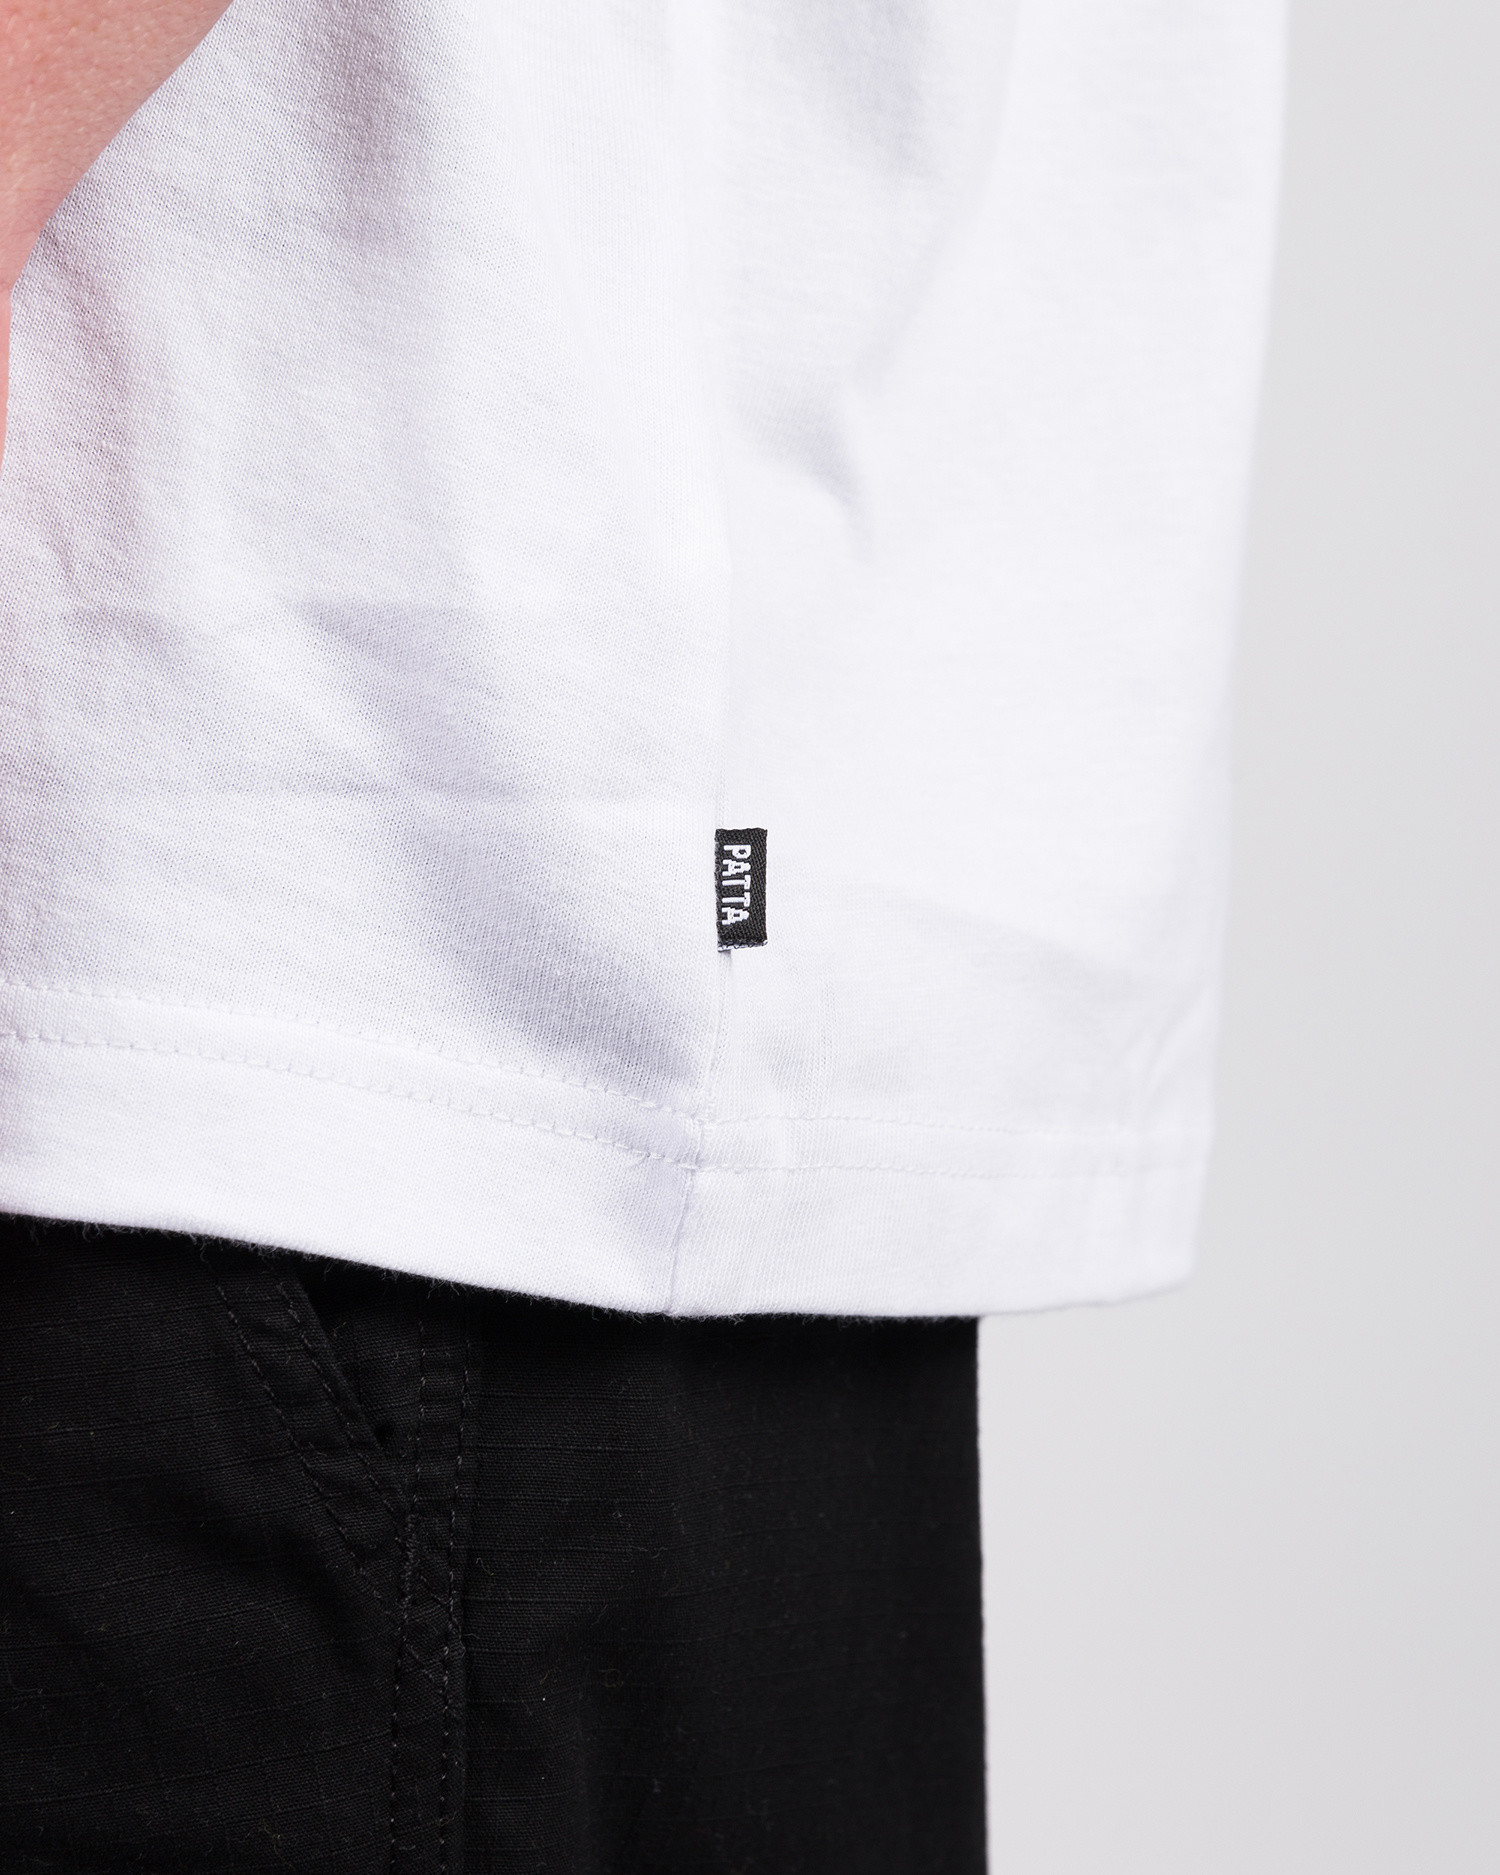 Patta Peek-a-boo T-shirt White